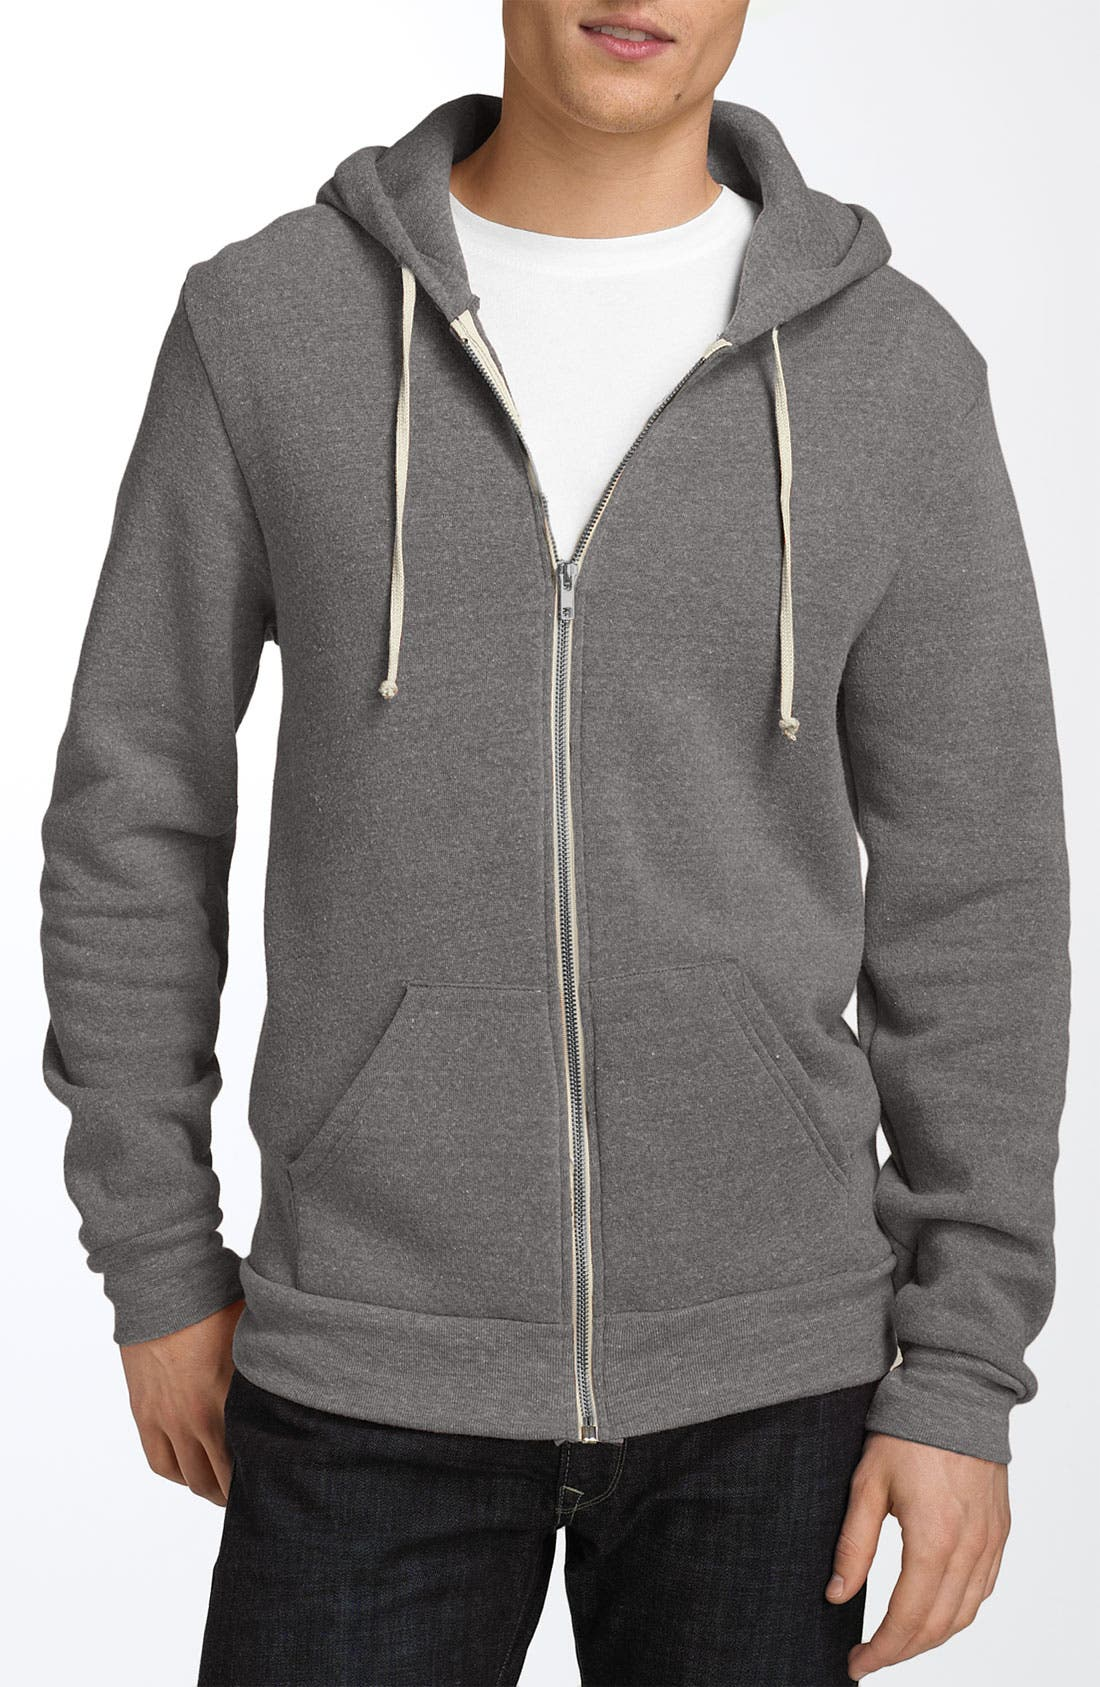 'Rocky' Trim Fit Hoodie,                         Main,                         color, Grey Heather